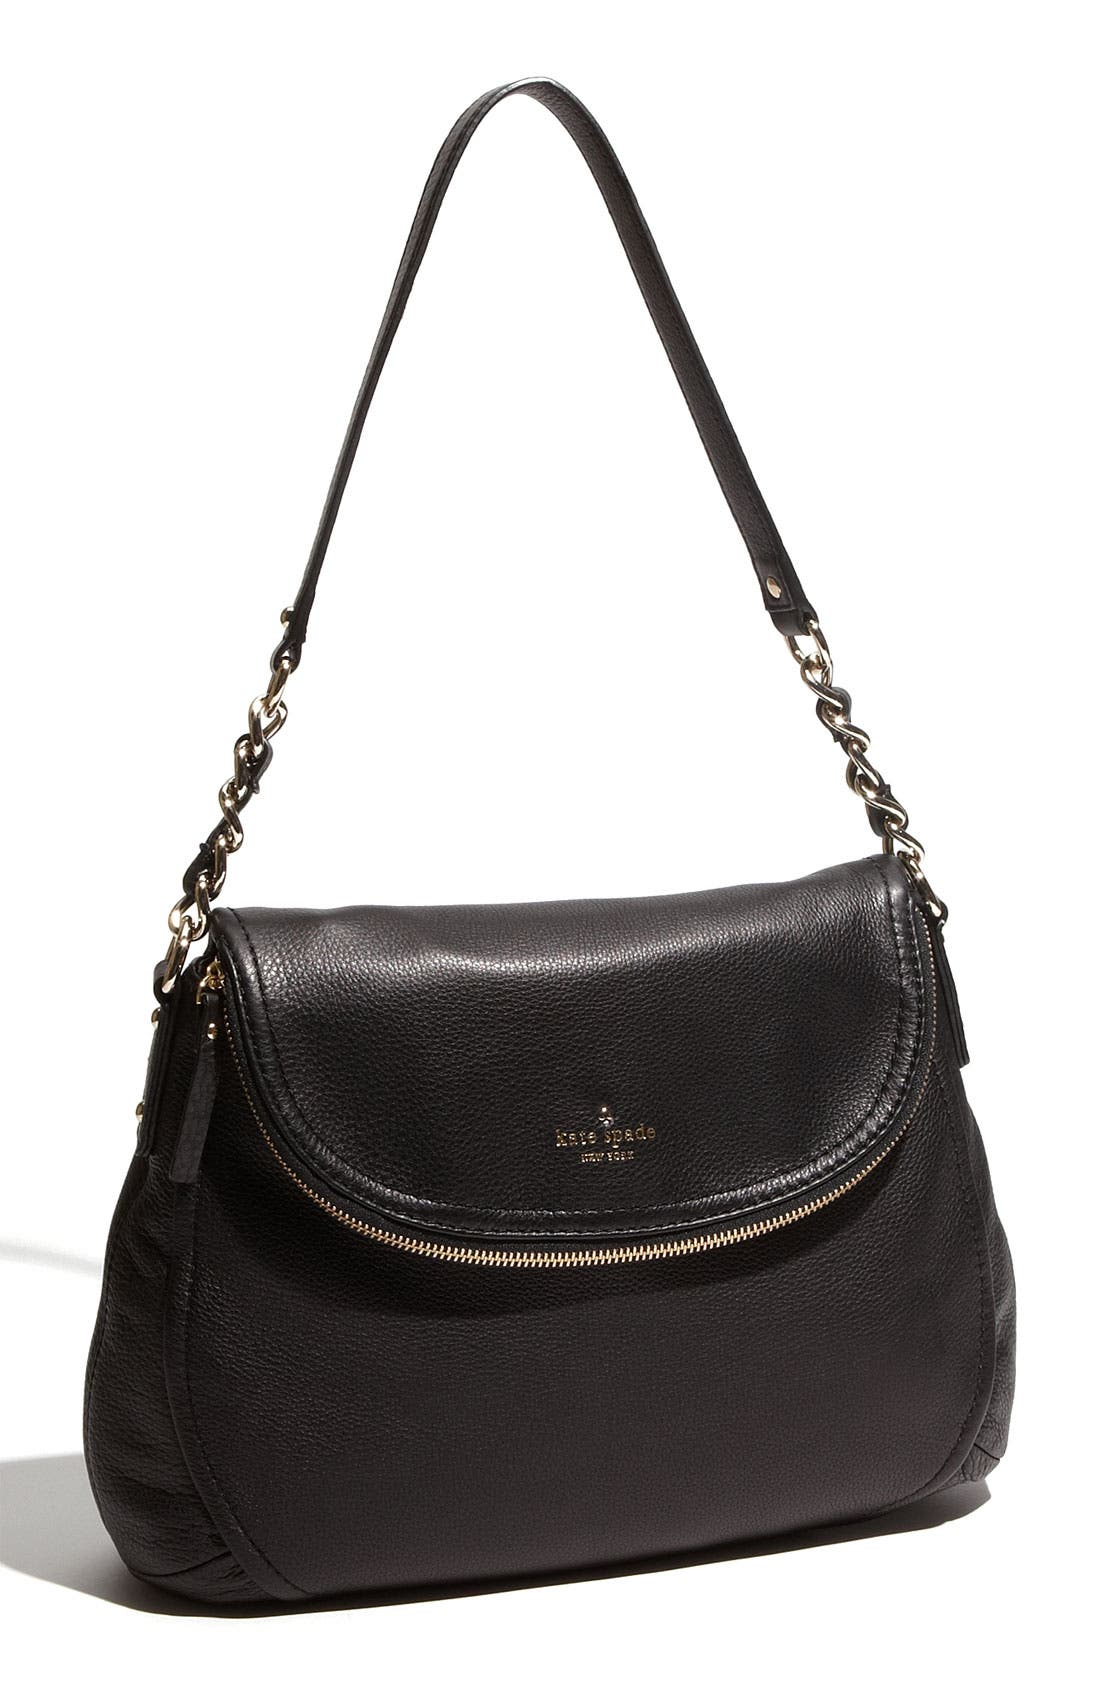 Alternate Image 1 Selected - kate spade new york 'cobble hill - penny' shoulder bag